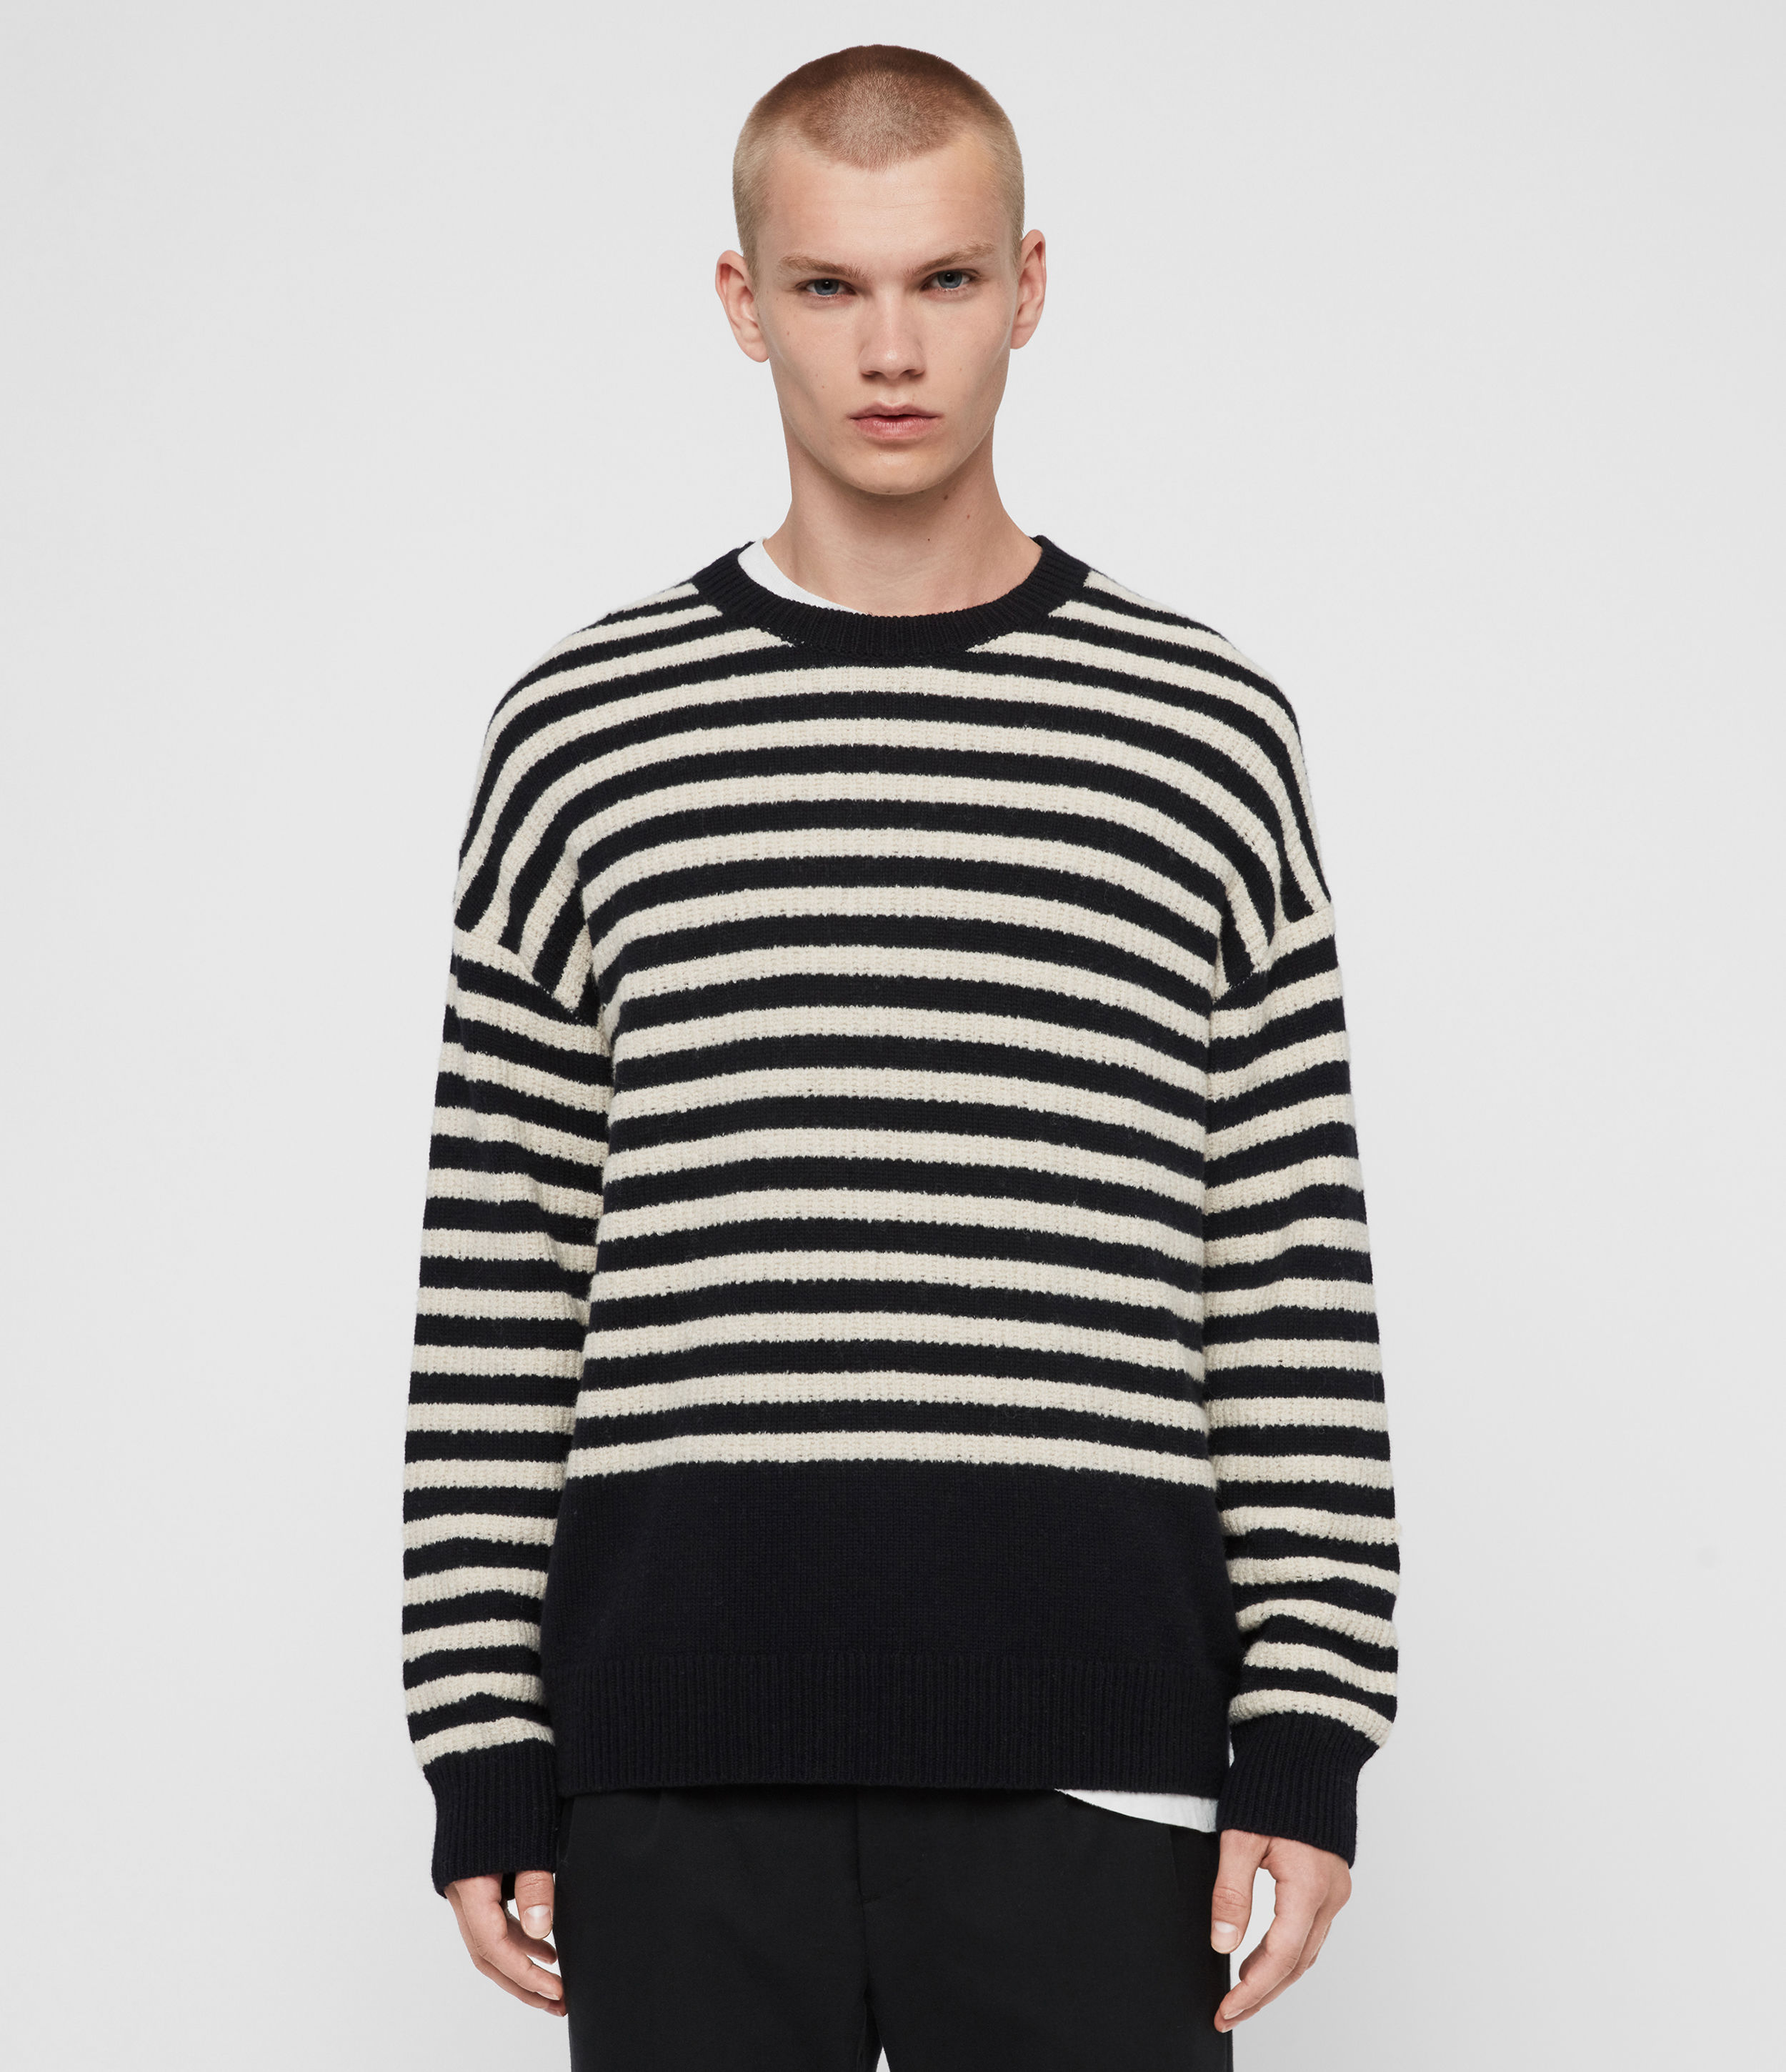 AllSaints Men's Cotton Stripe Keet Crew Jumper, Blue and White, Size: M